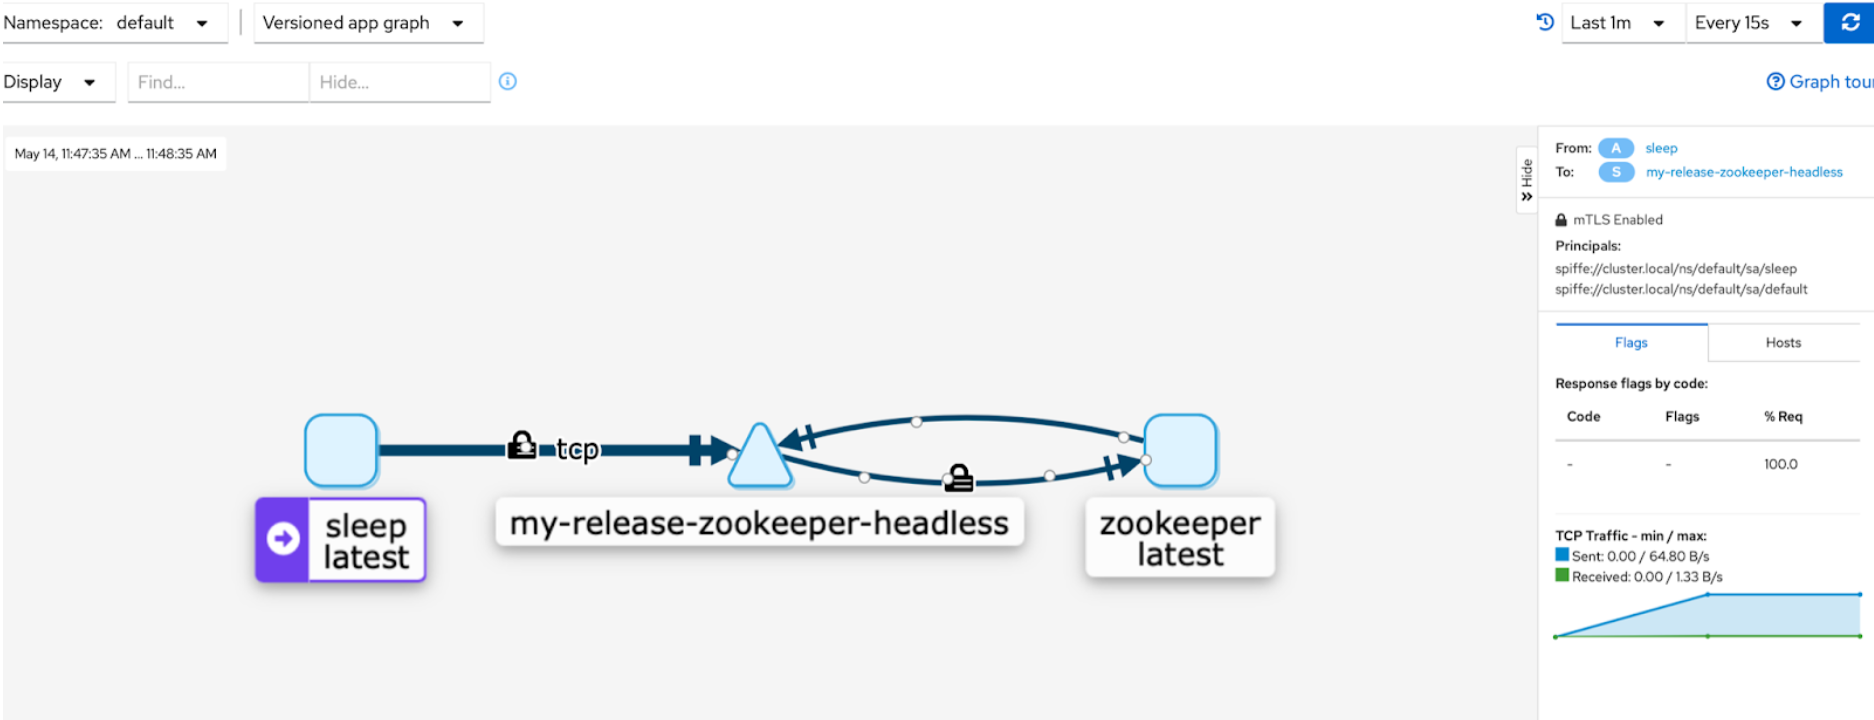 Visualize the ZooKeeper Services in Kiali